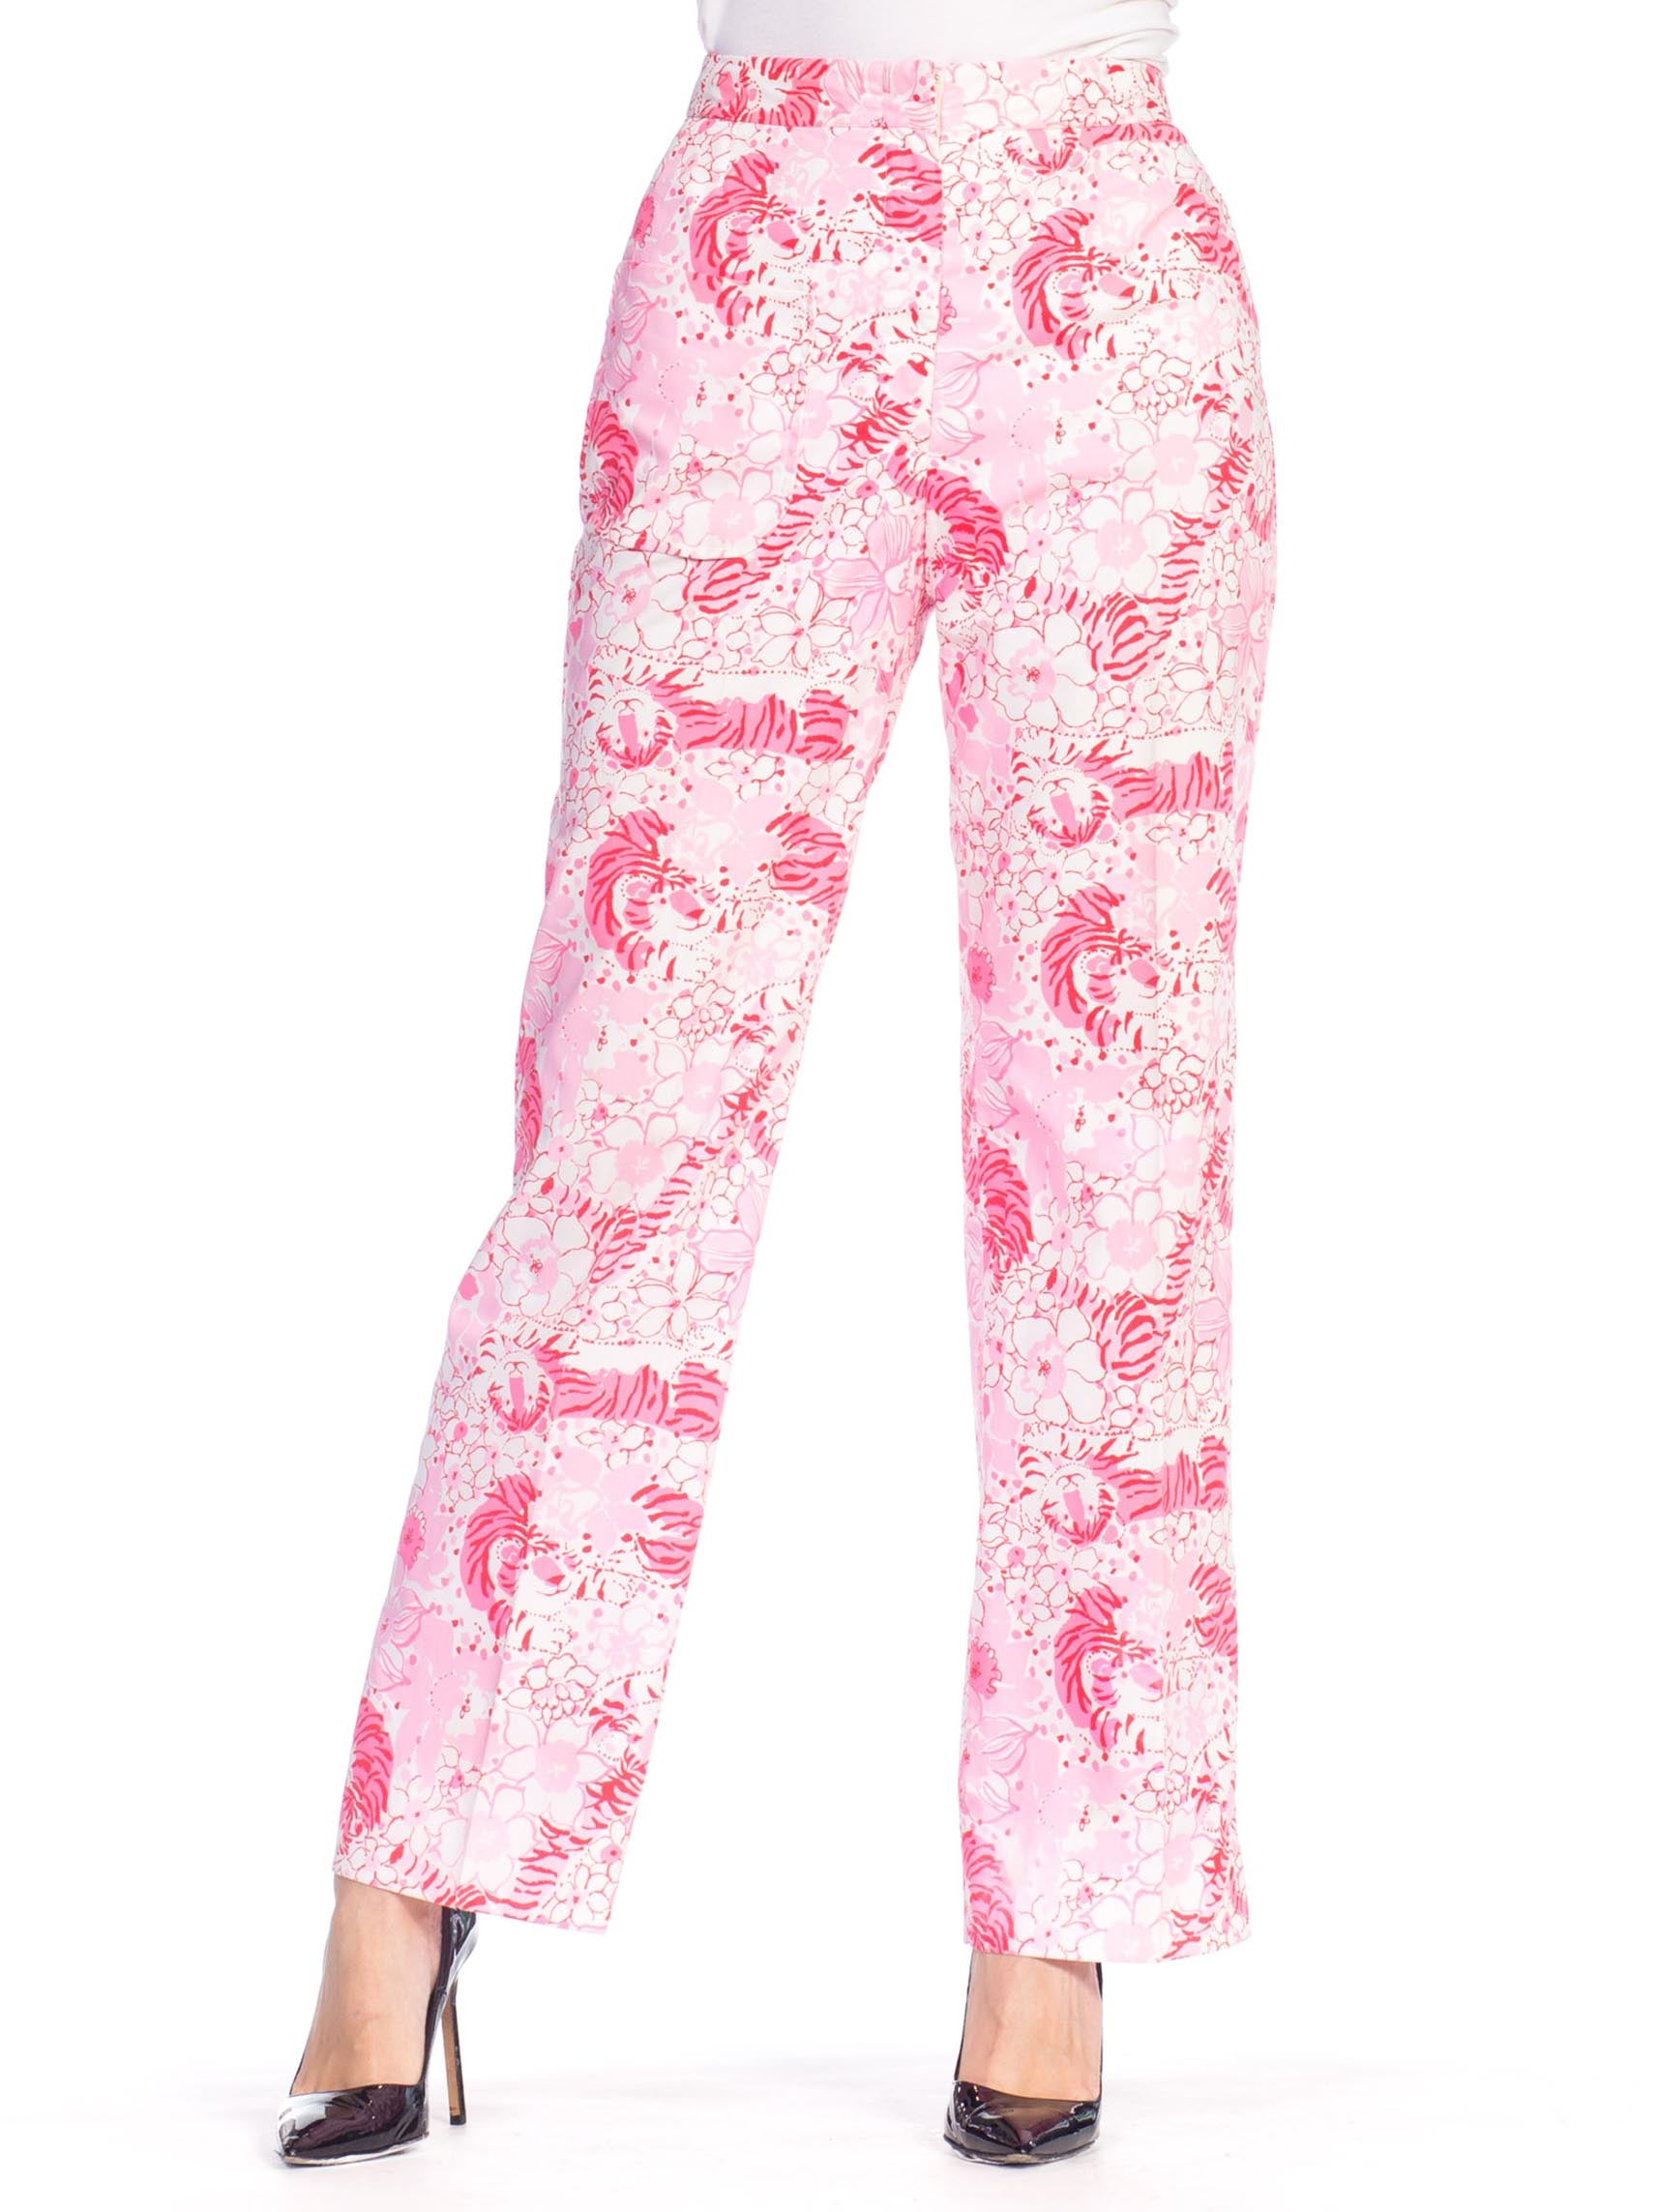 1970S LILLY PULITZER Pink  & White Cotton Floral Tiger Print Pants